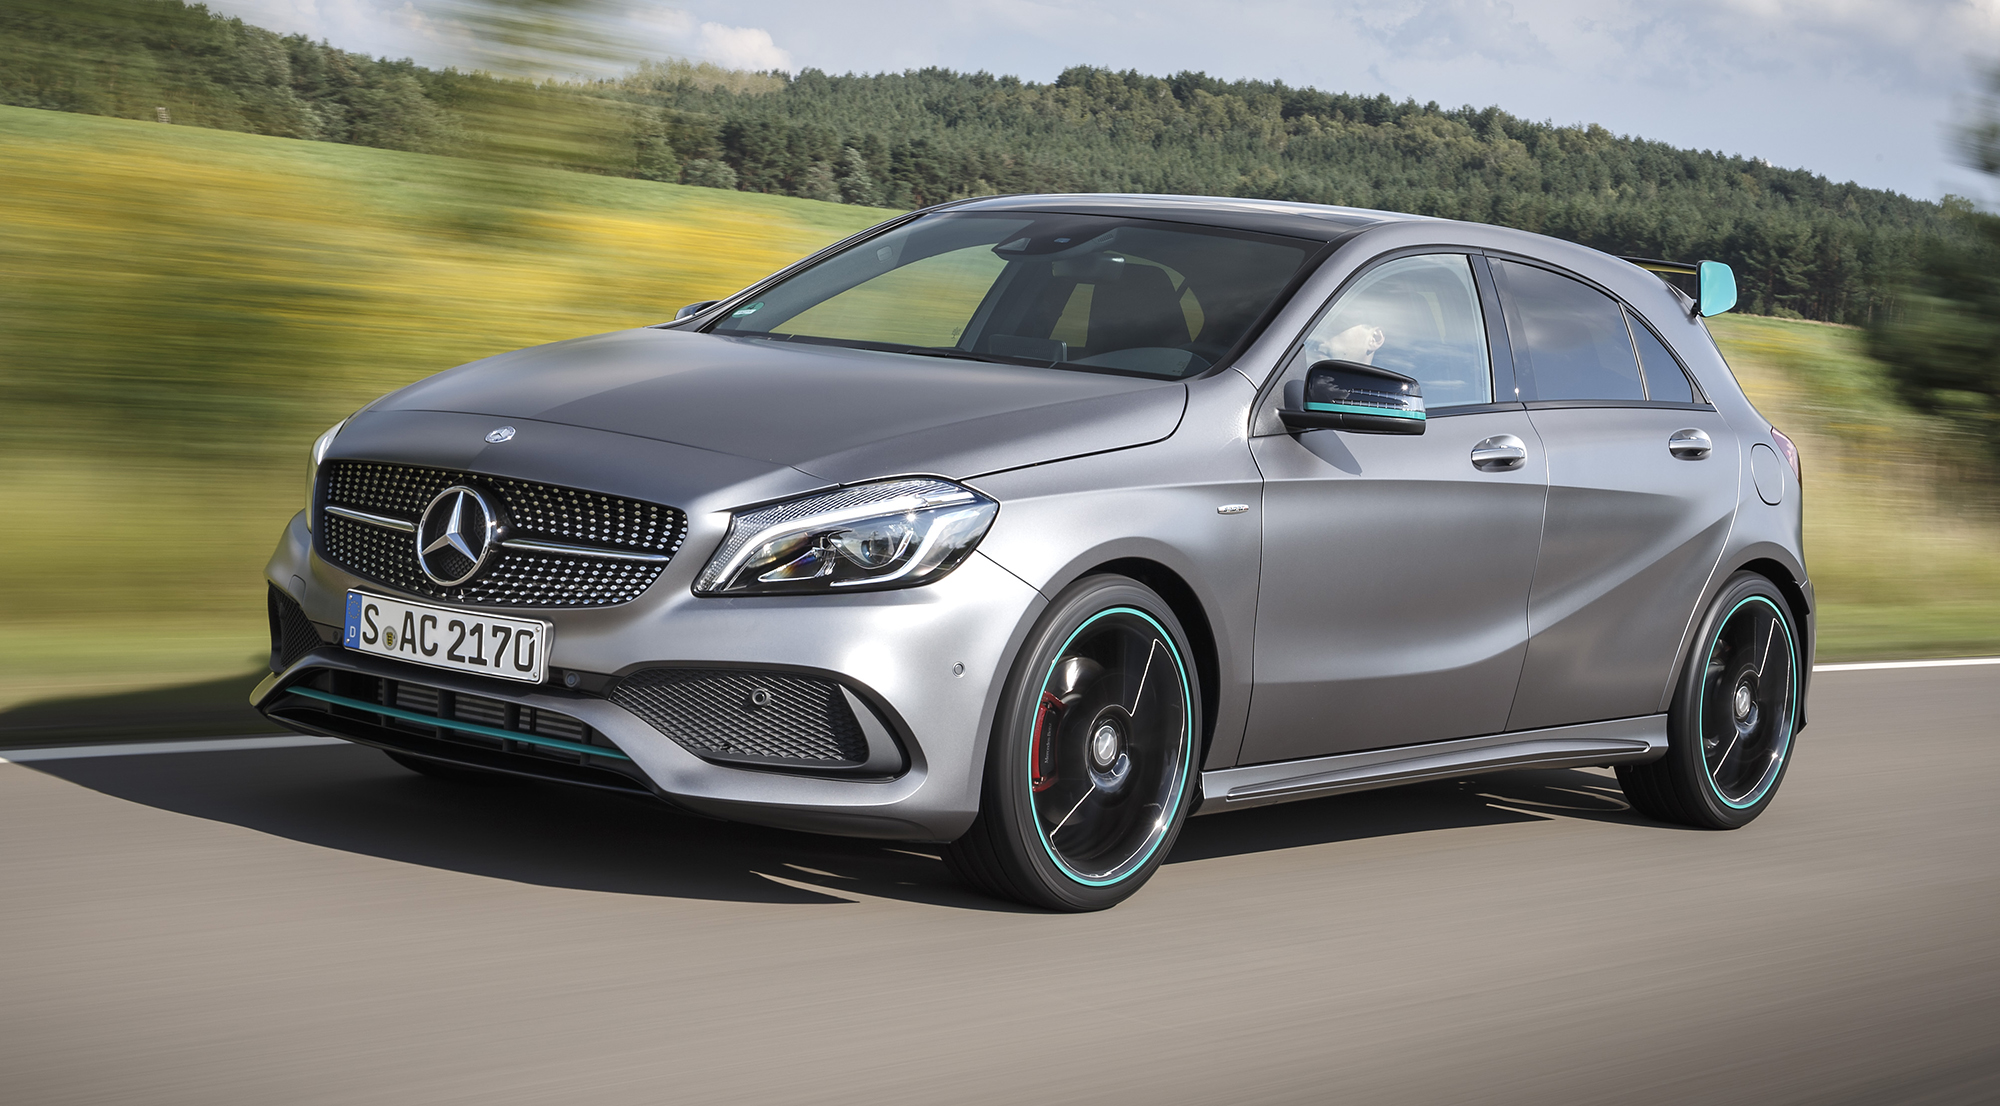 2016 mercedes benz a class amg a45 pricing and specifications styling boost upgraded features. Black Bedroom Furniture Sets. Home Design Ideas